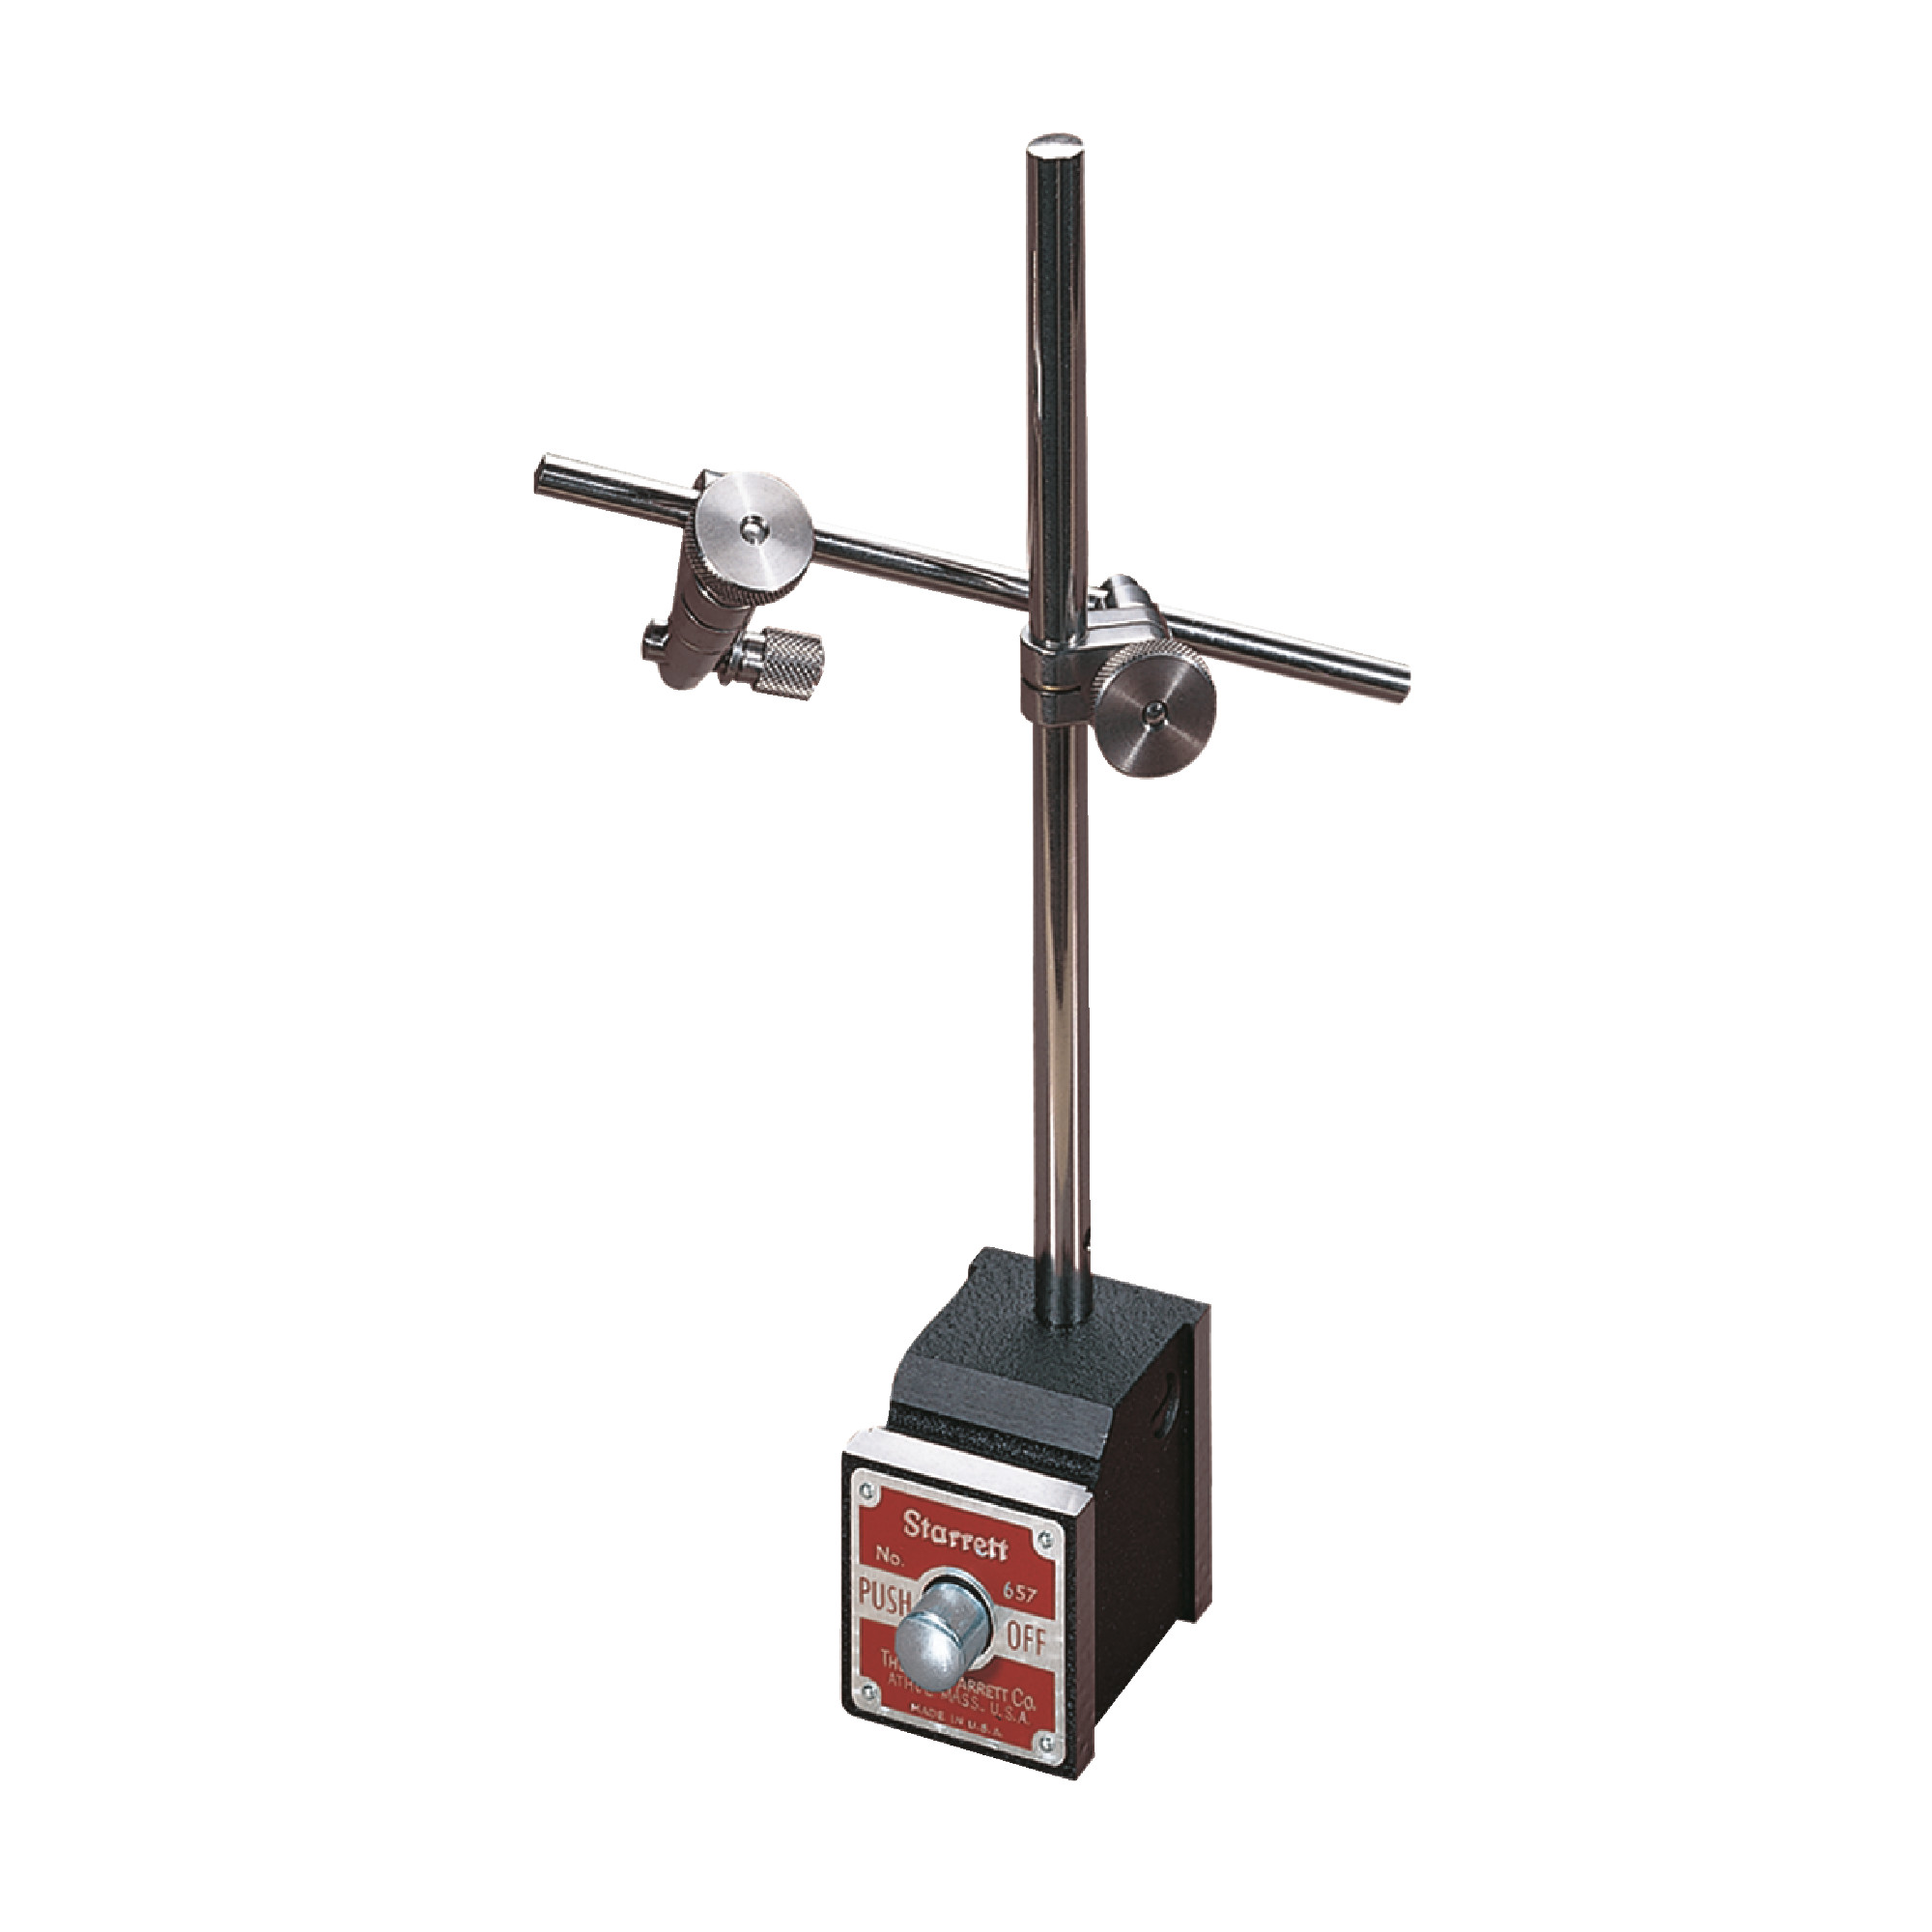 Magnetic Base with All Attachments